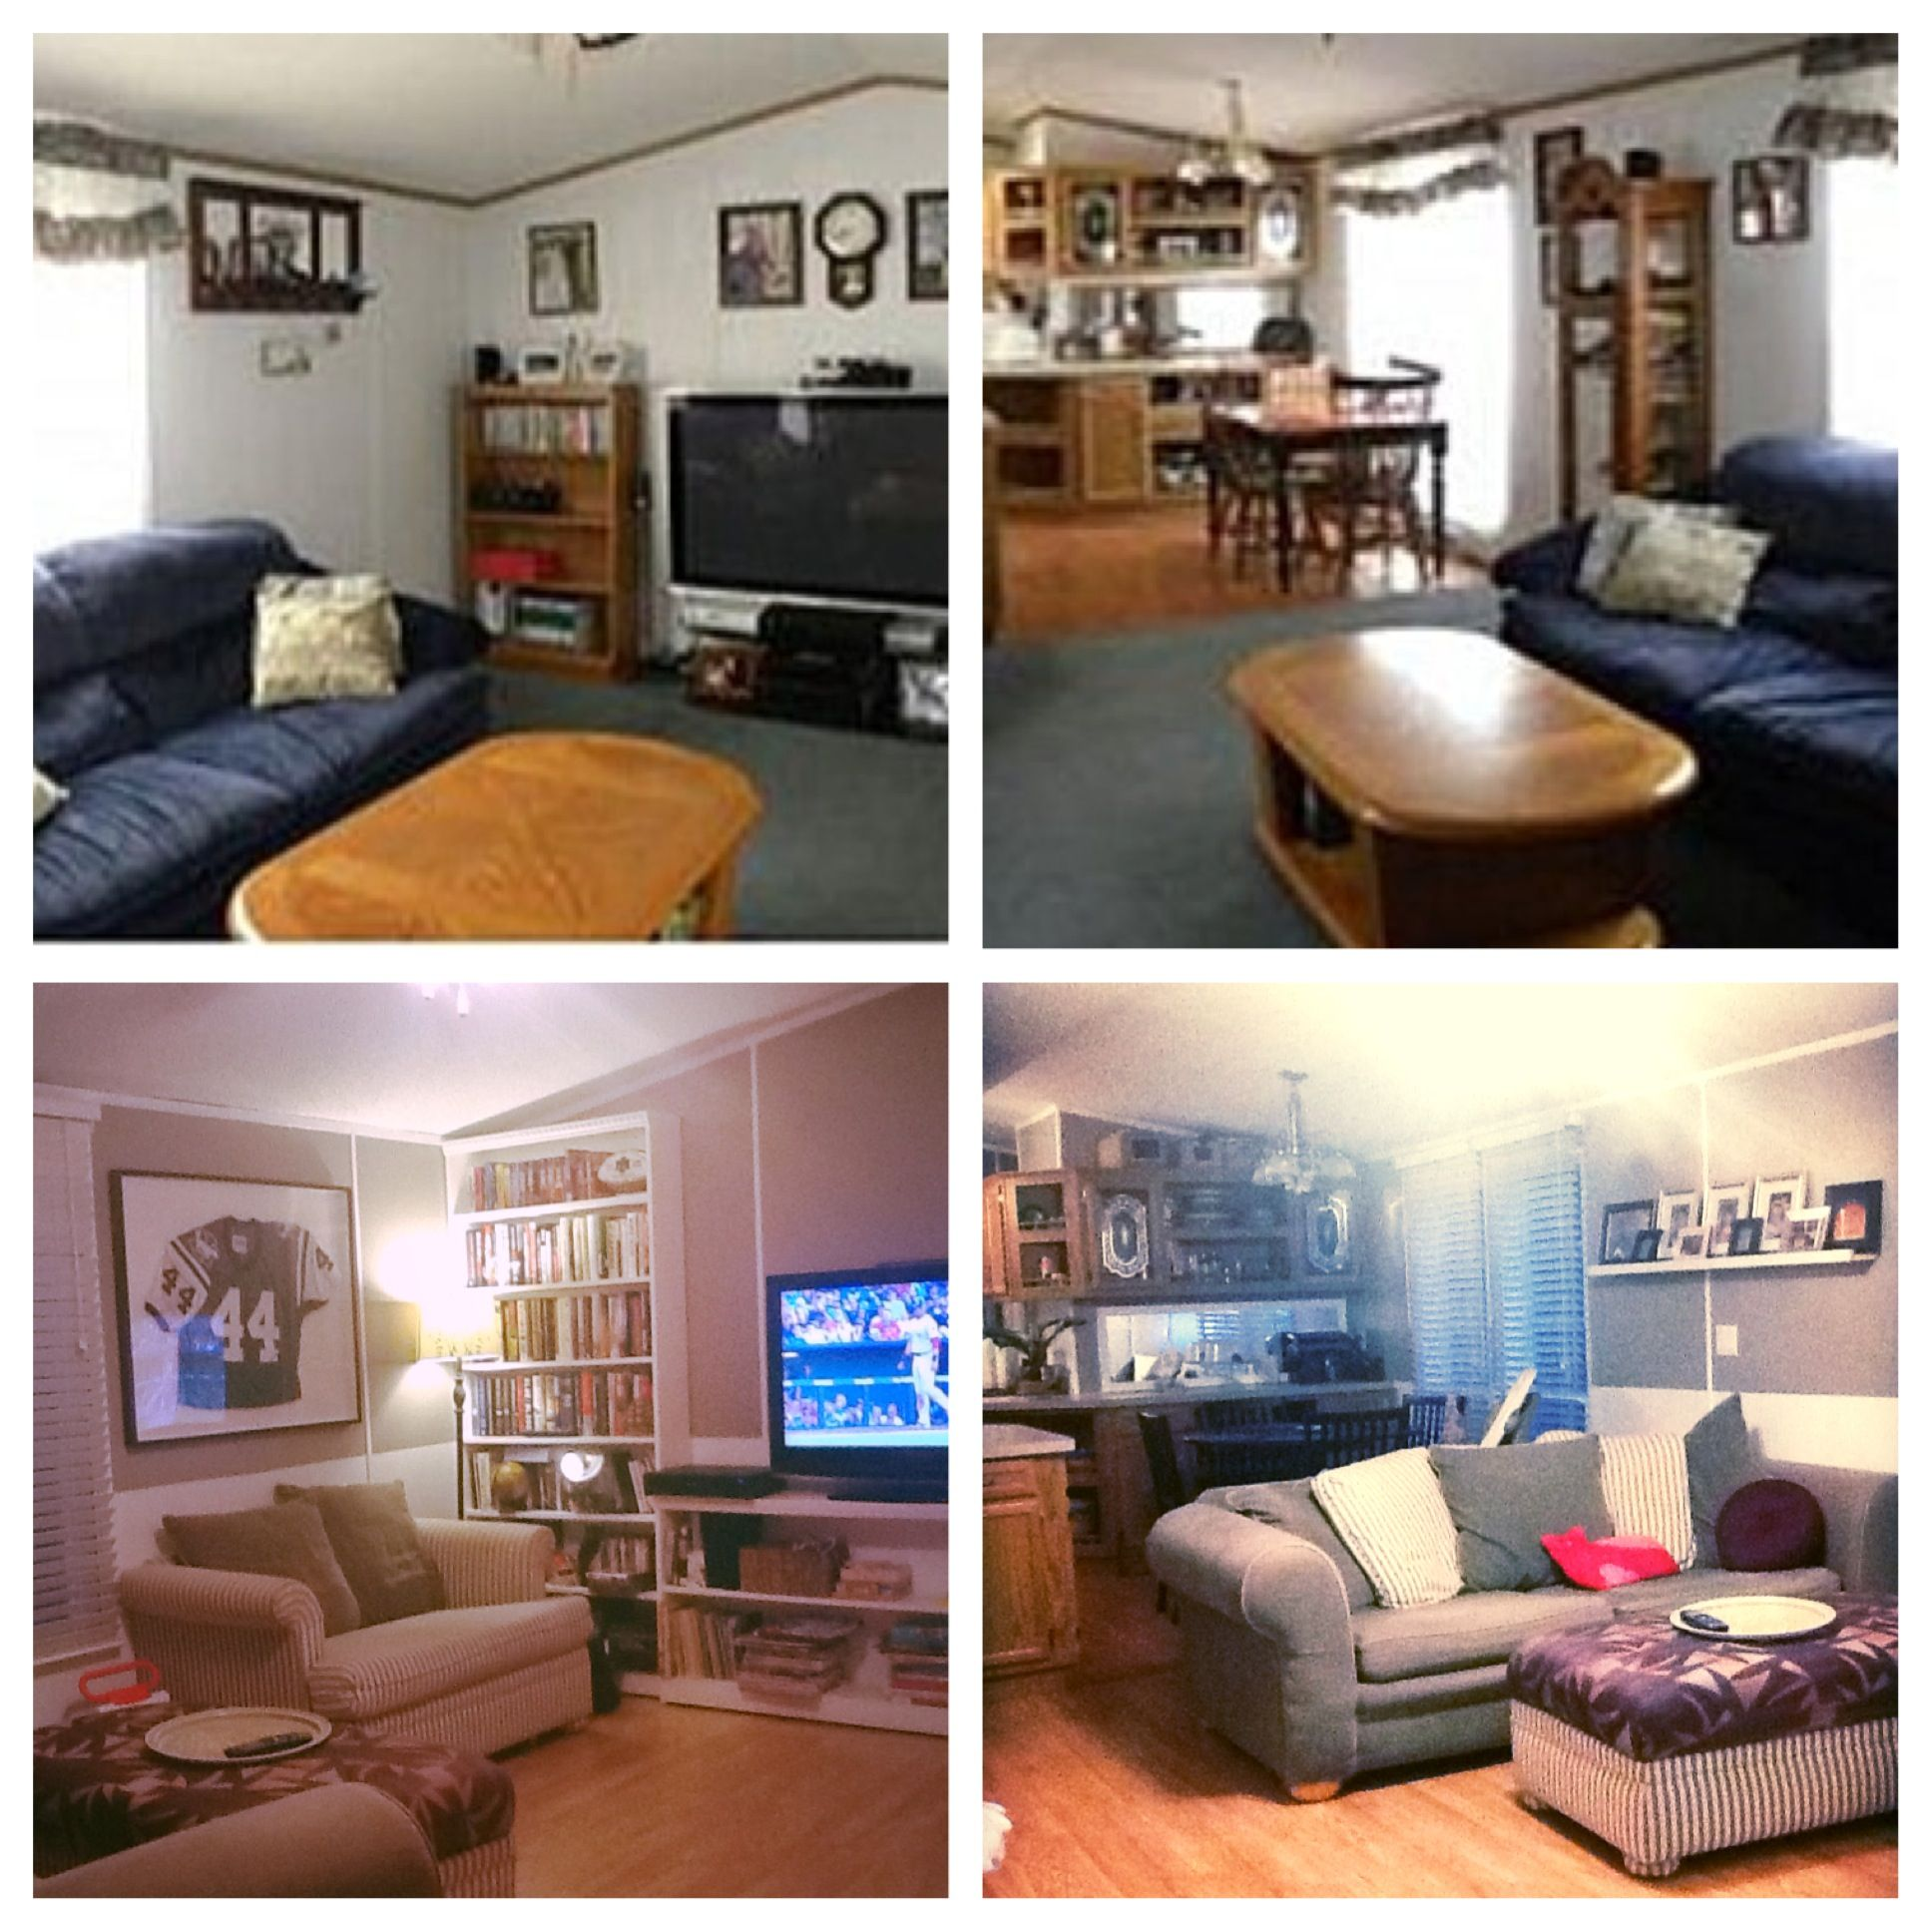 Before And After Home Makeovers: Before And After Makeover Pictures Of Our Single Wide